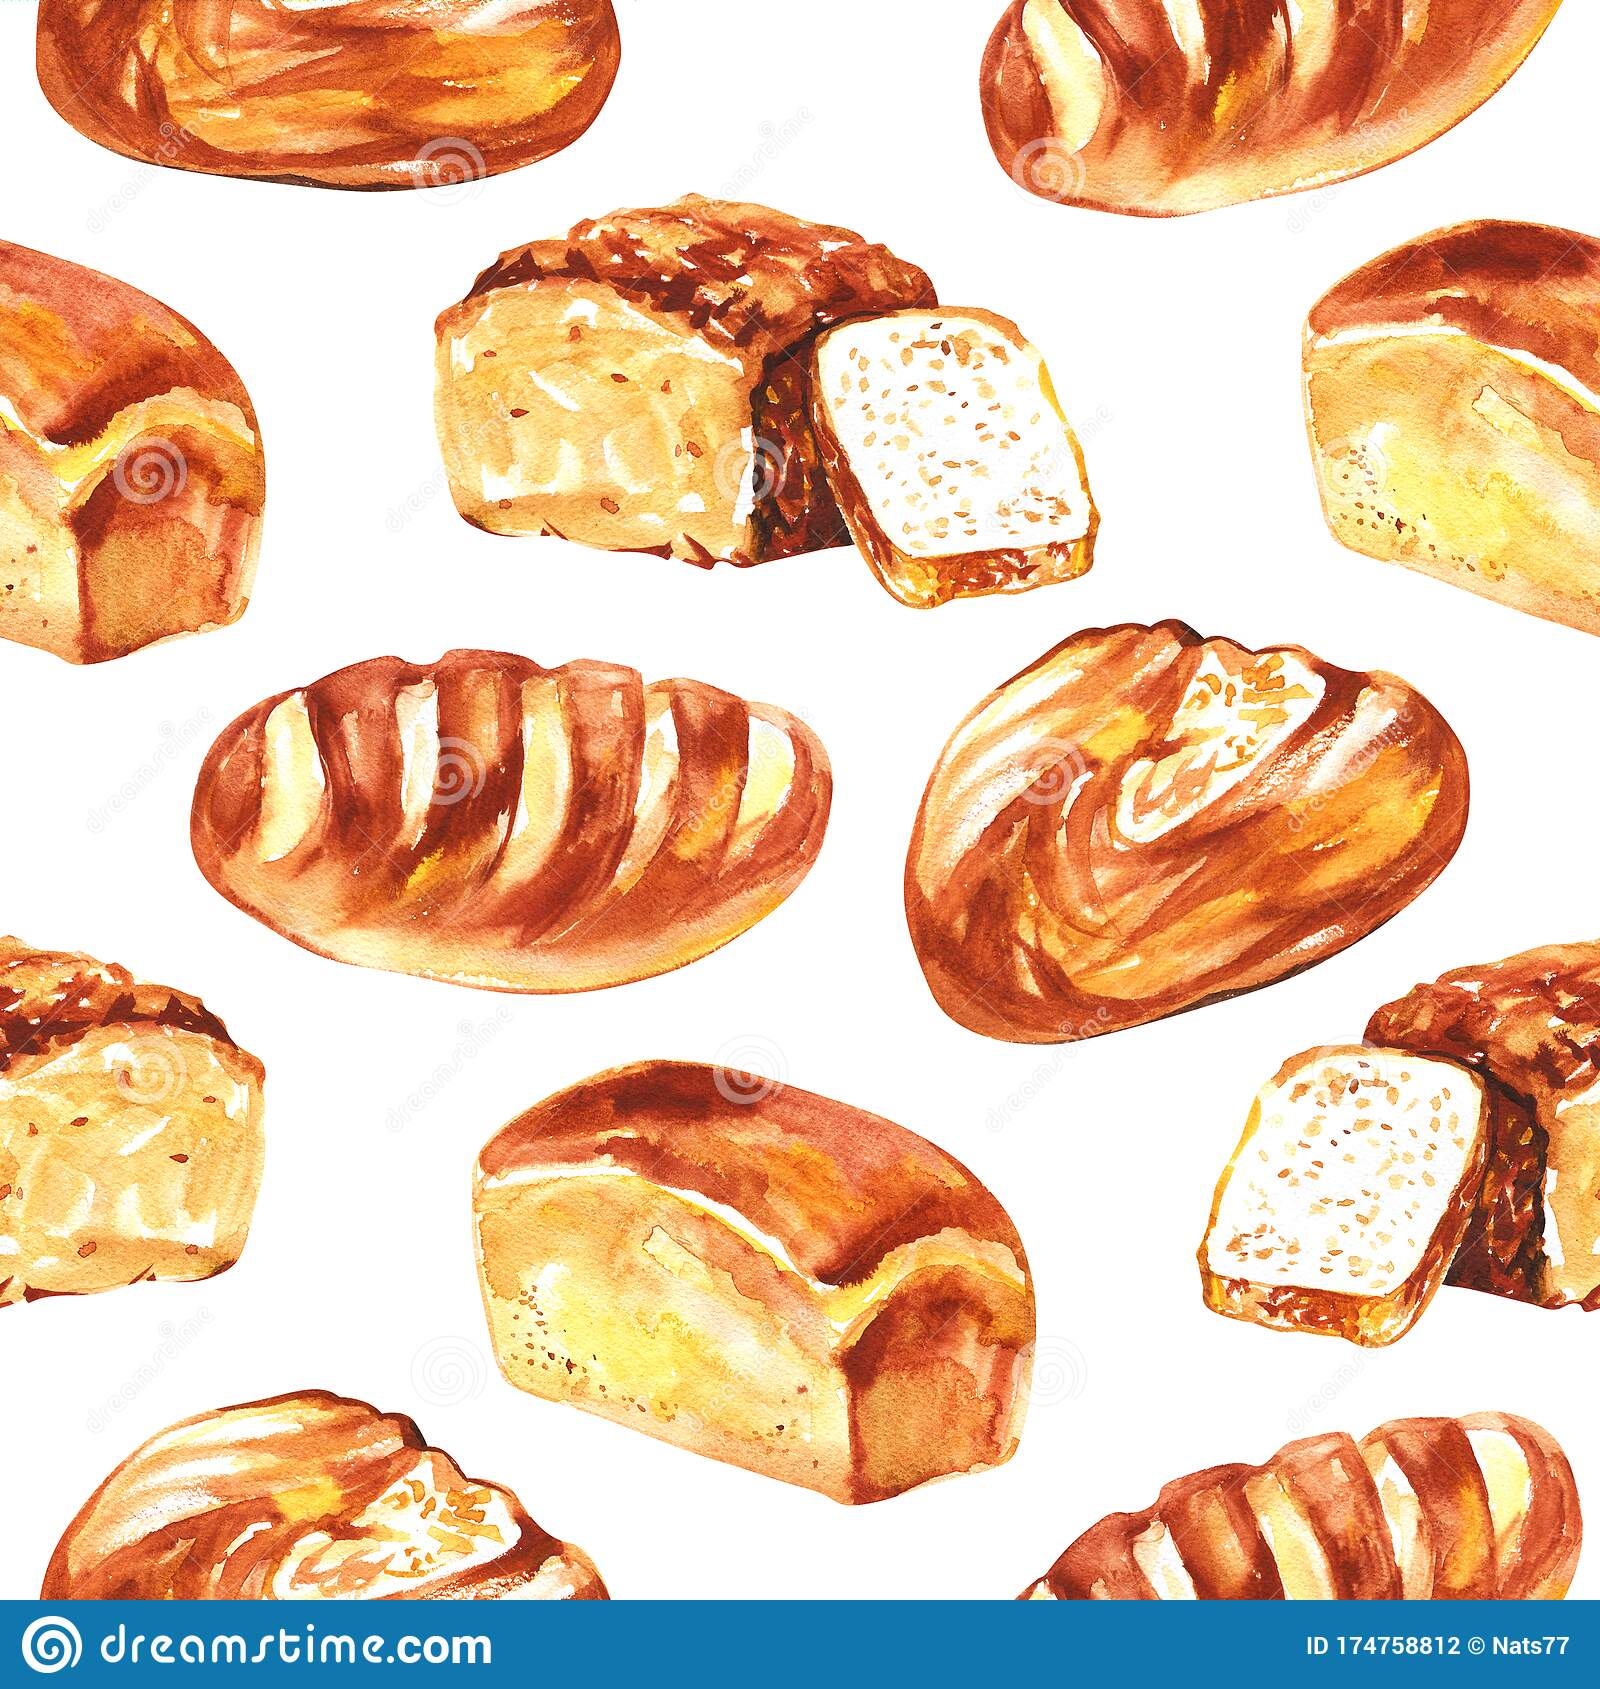 Bread Watercolor Isolated On White Background Seamless Pattern For All Prints On Hand Painting Style Stock Illustration Illustration Of Baked Meal 174758812